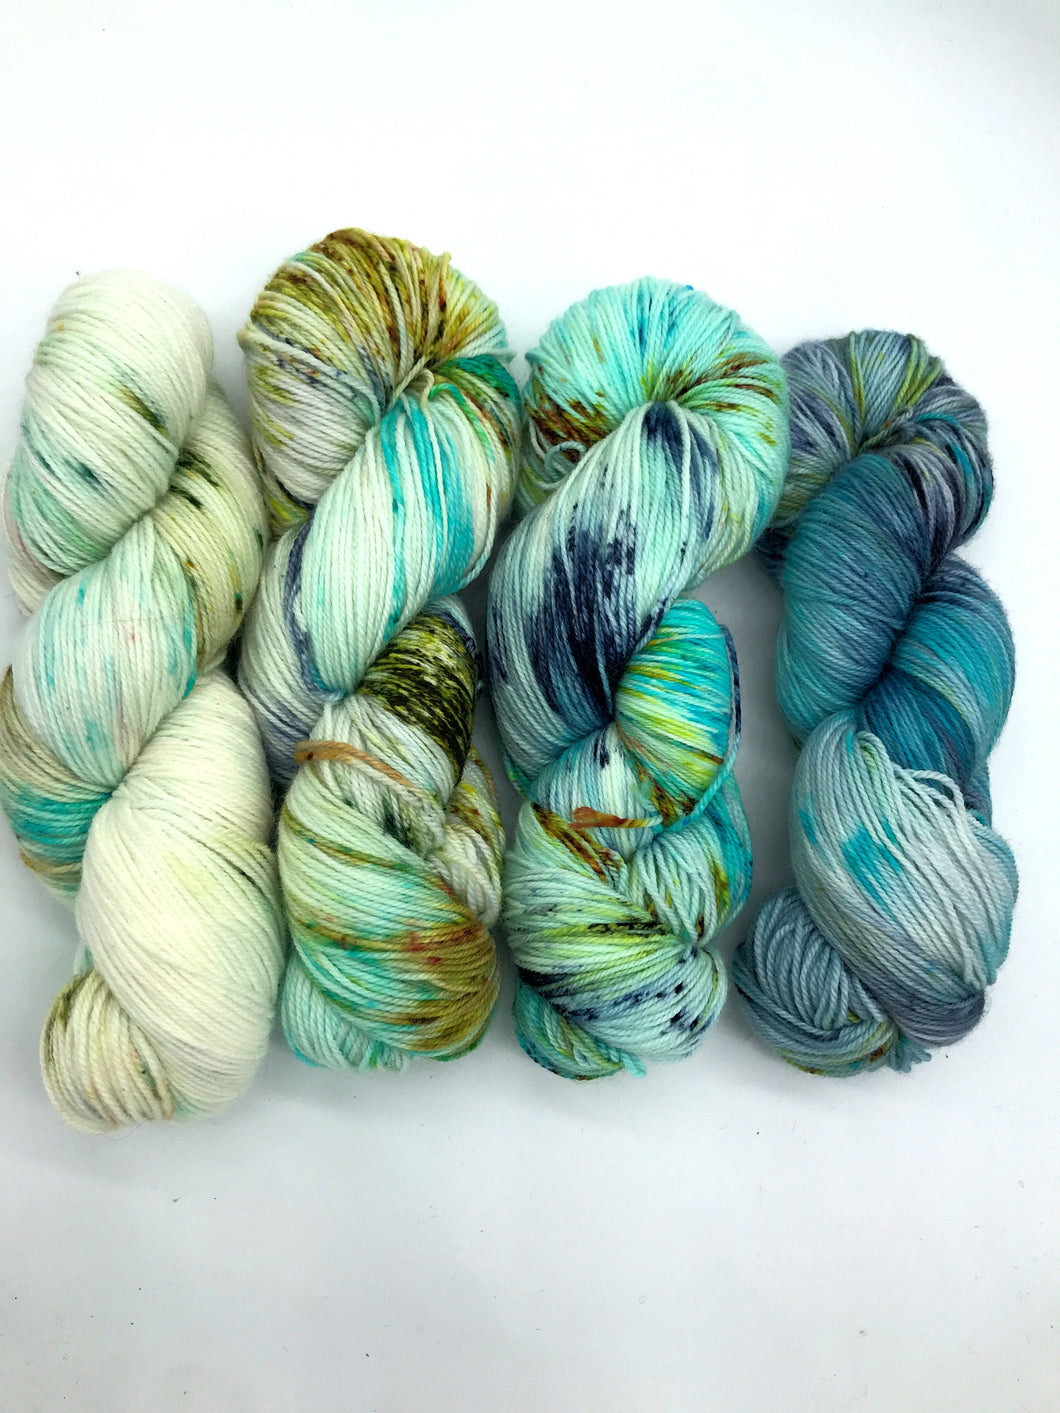 The great outdoors - Fade Kit - Hand Dyed Fingering - SW 3 PLY 80/20 Merino and Nylon in Greens and Blues - sock, knitting and crochet yarn